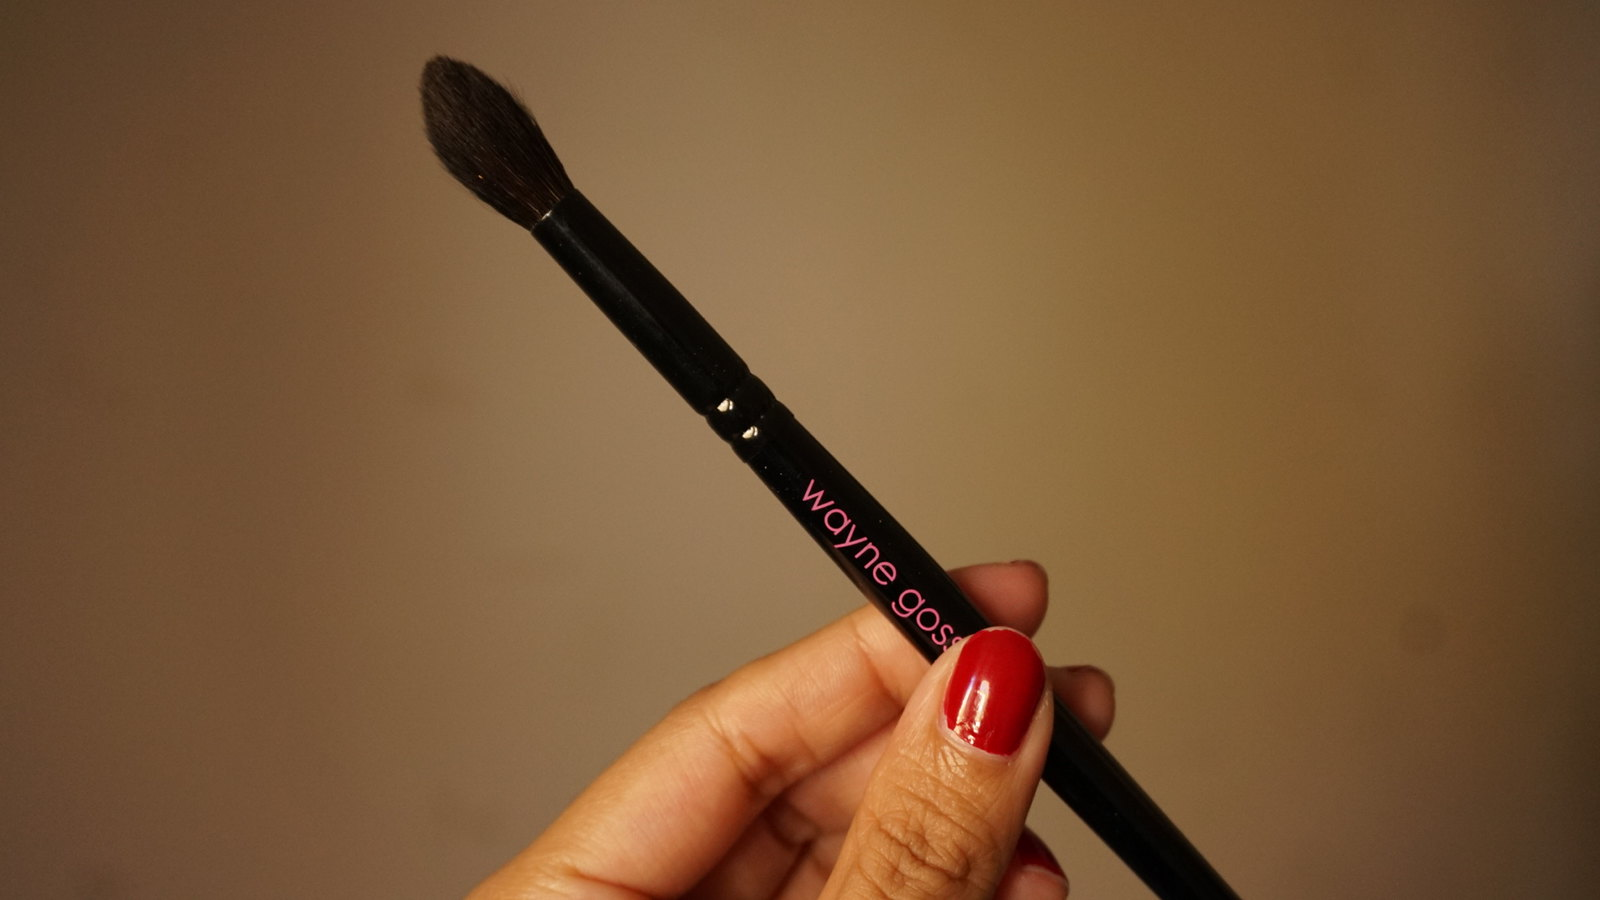 wayne goss brush 03 review girlandvanity.com